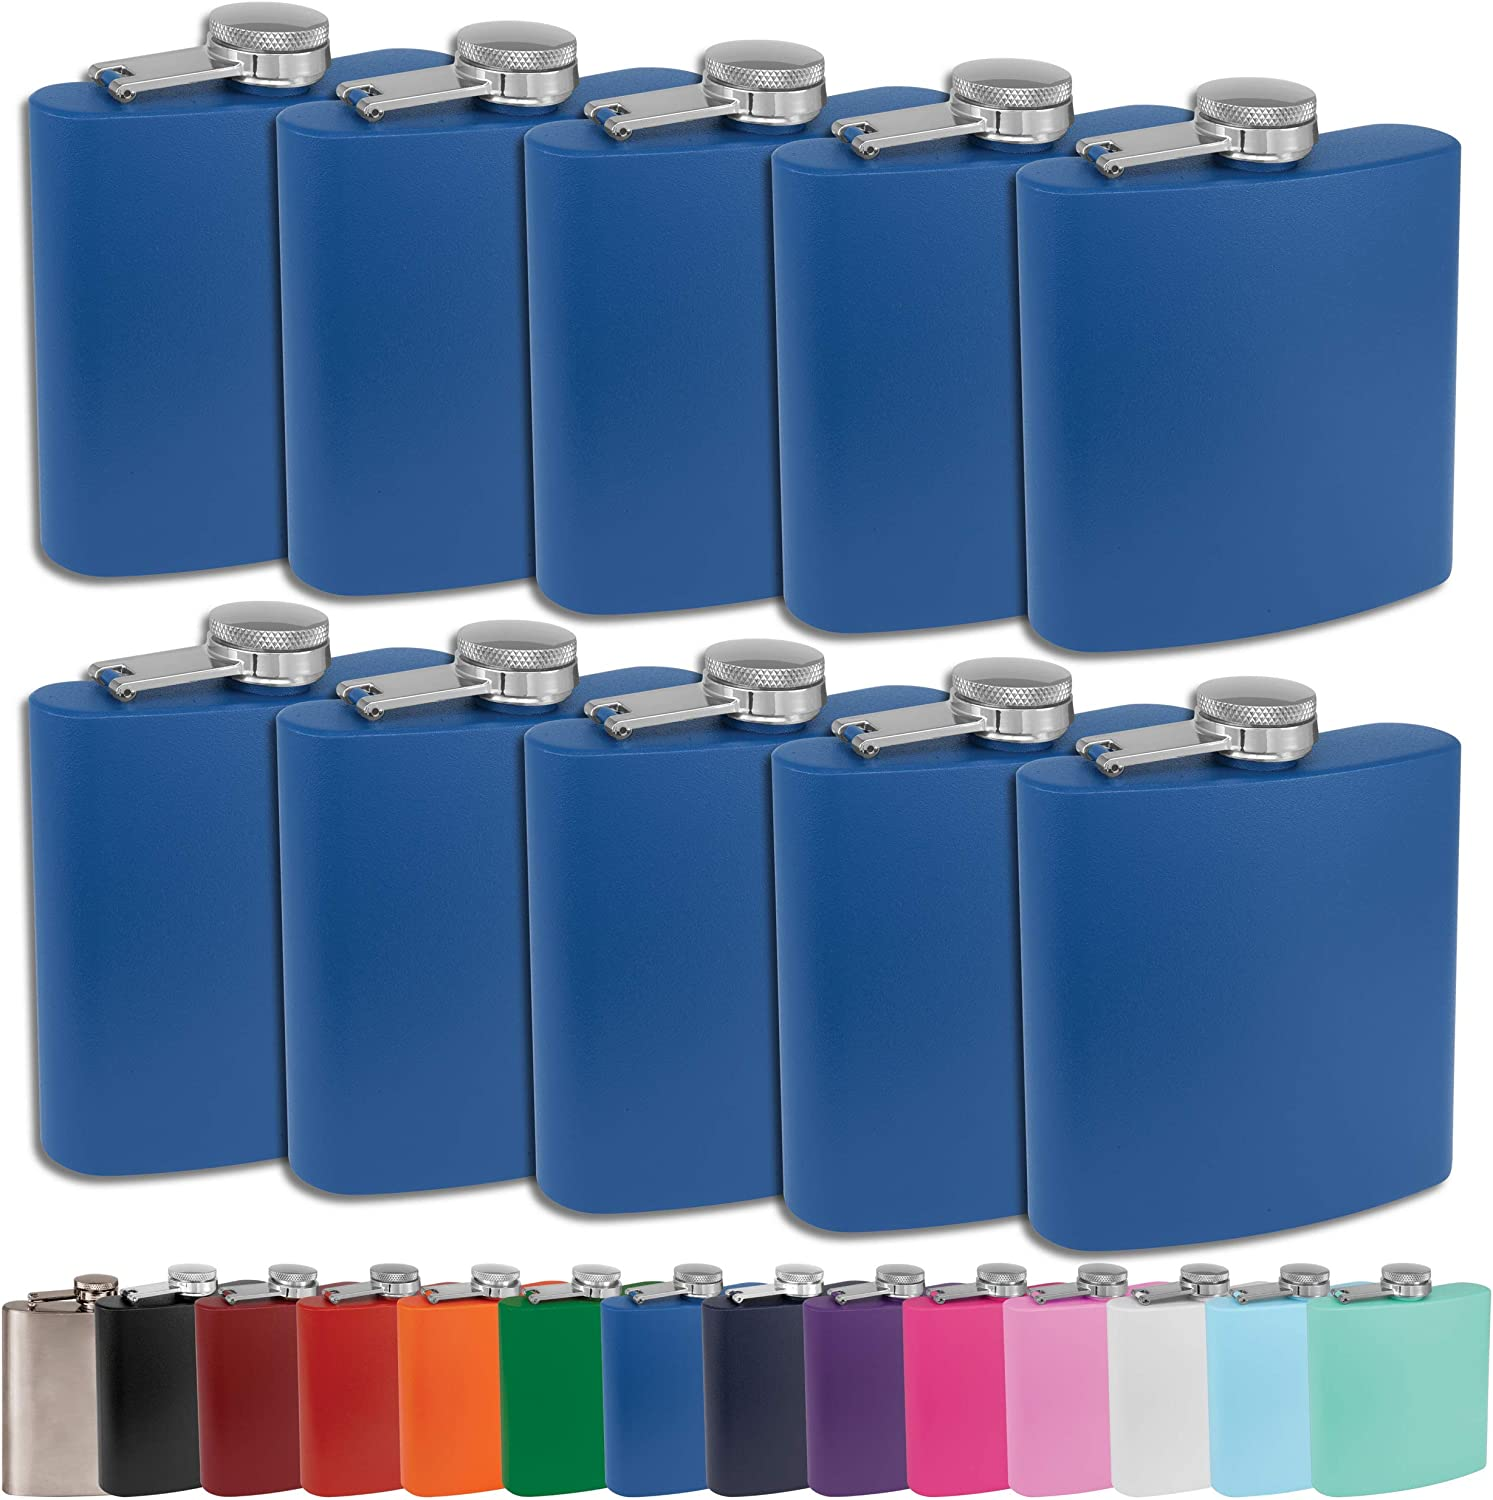 Clear Water Home Goods - 6 oz Powder Coated Stainless Steel Hip Flask - Wedding Party - Groomsman - Bridesmaid (Matte Royal Blue, 10)